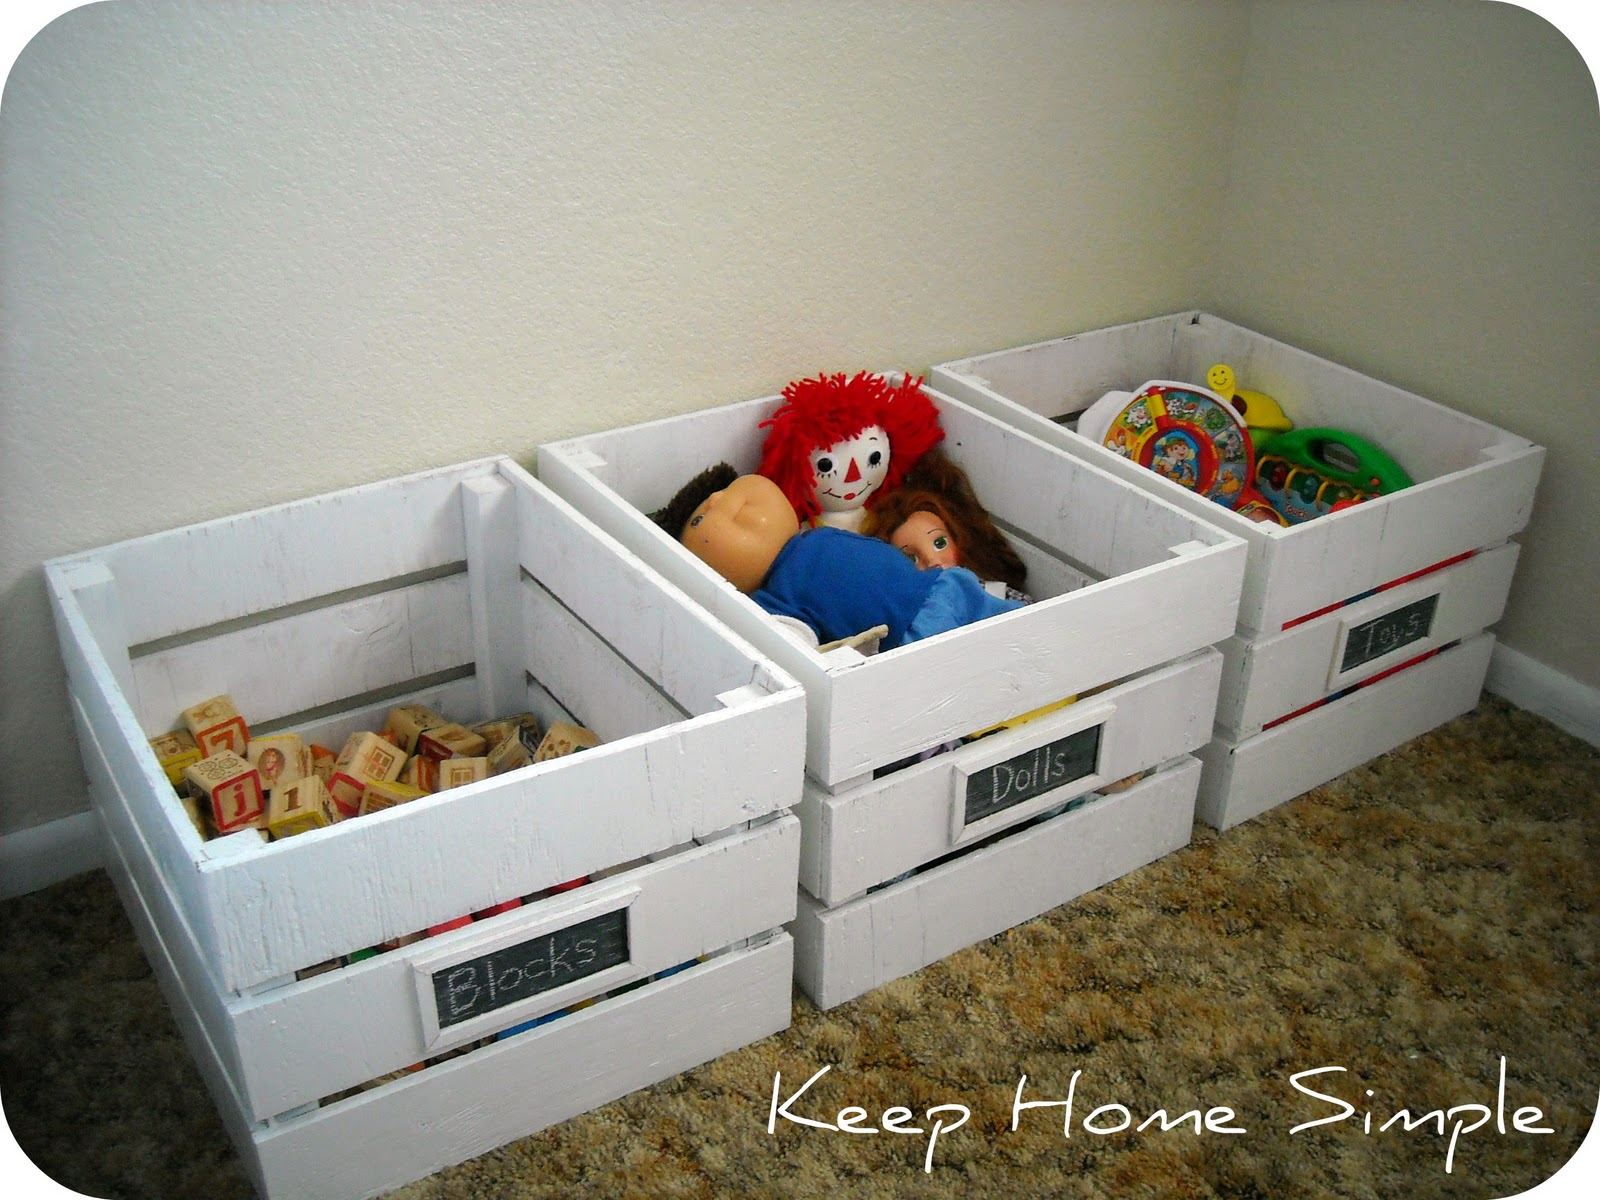 Keep Home Simple Homemade Wooden Crates